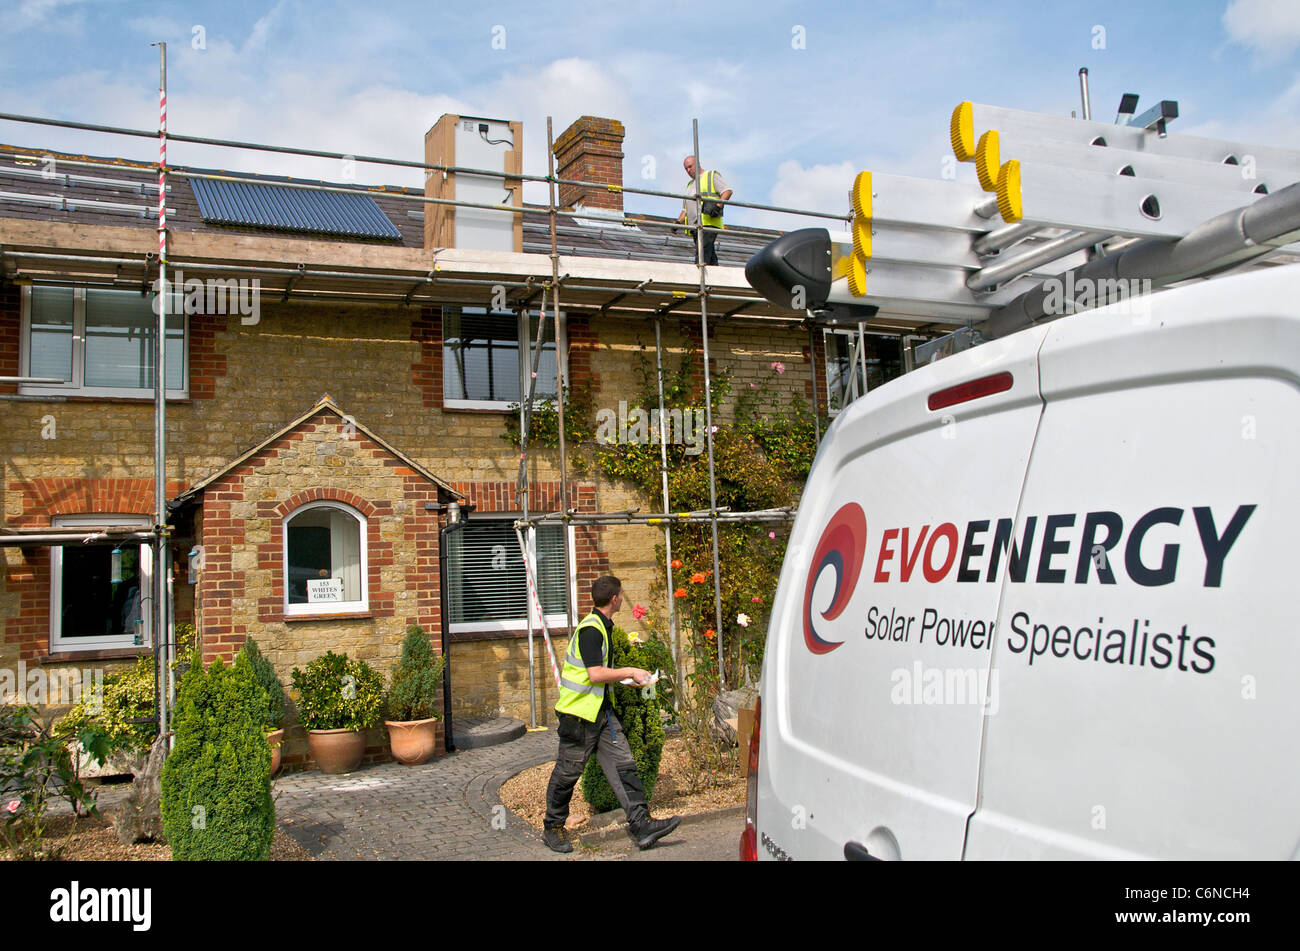 Photovoltaic panels on a roof using solar energy to create electricity Stock Photo